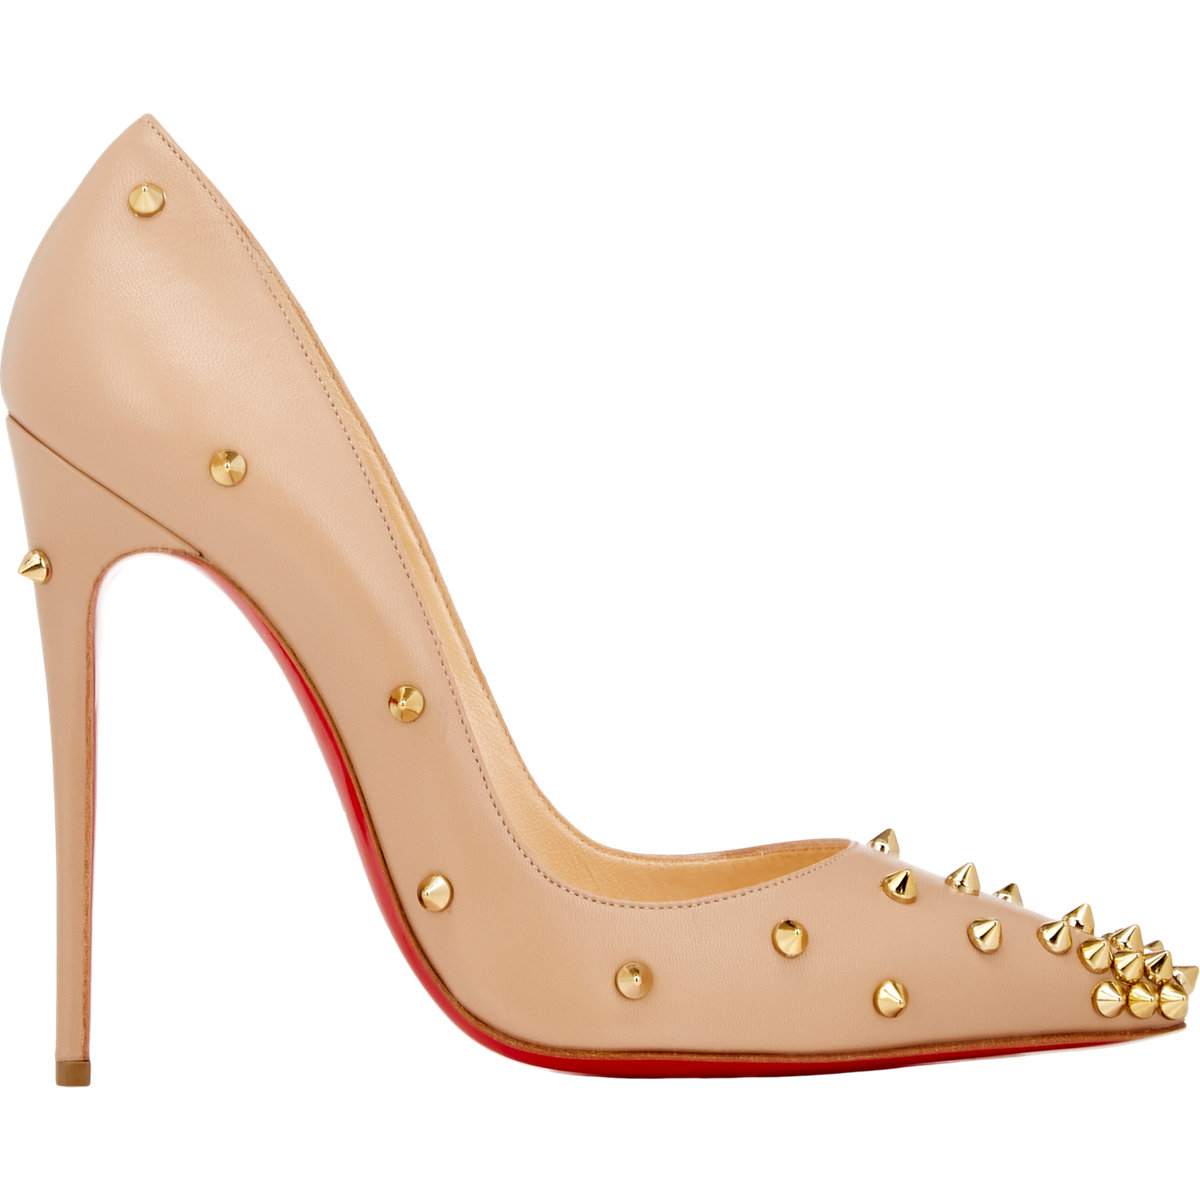 christian louboutin degraspike studded leather pumps